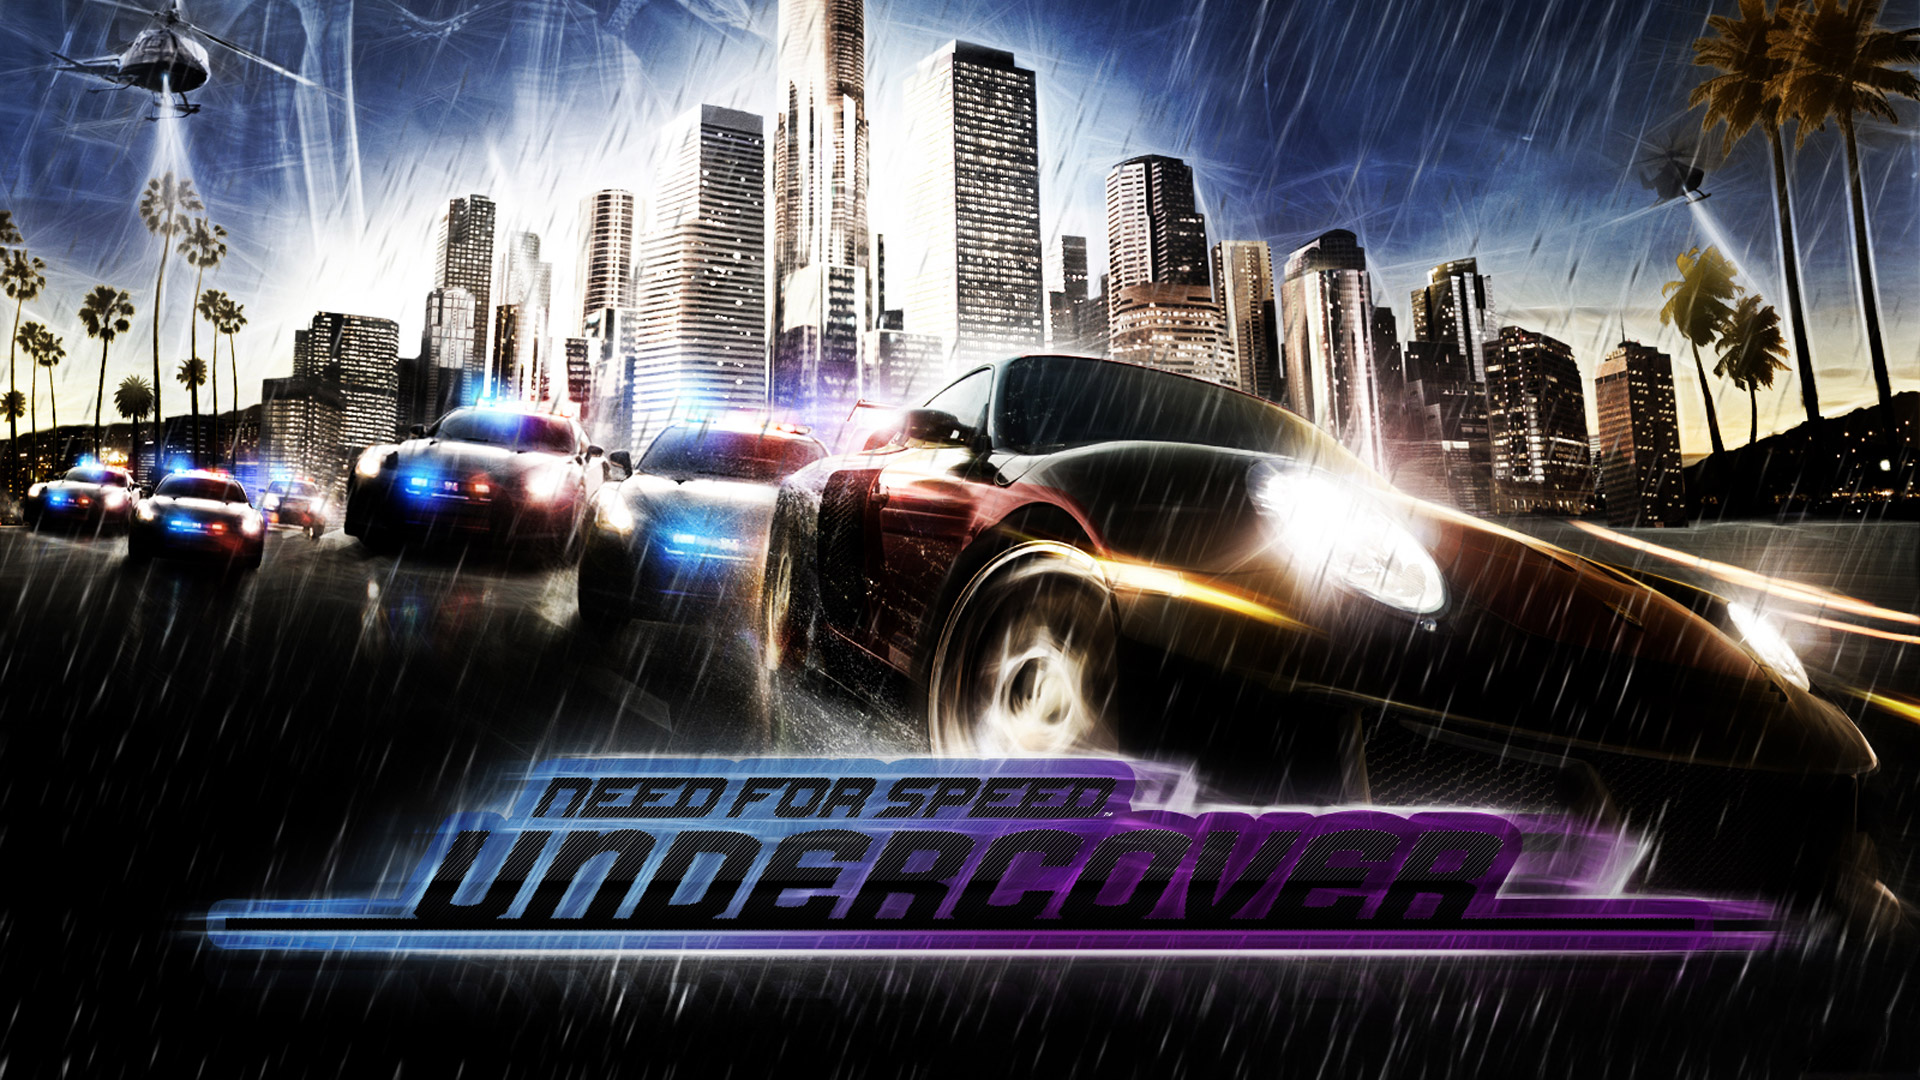 Free Need for Speed: Undercover Wallpaper in 1920x1080